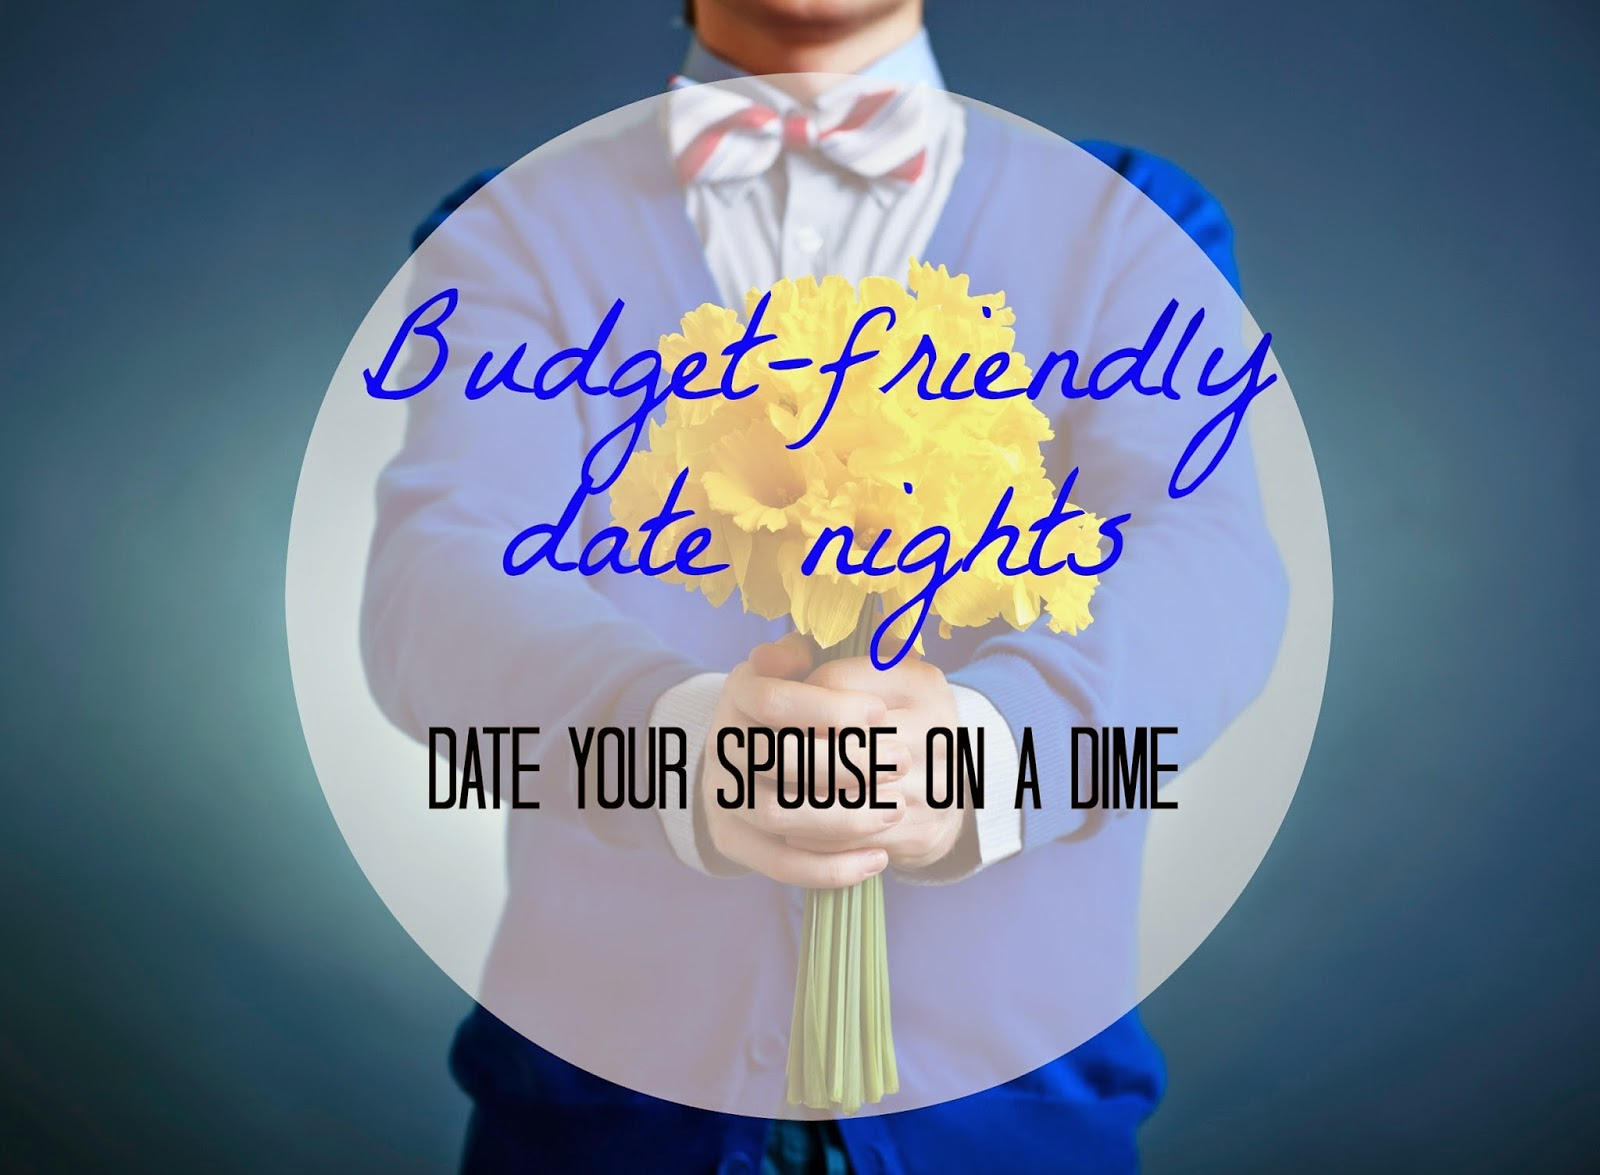 Budget-Friendly Date Nights: Date Your Spouse on a Dime